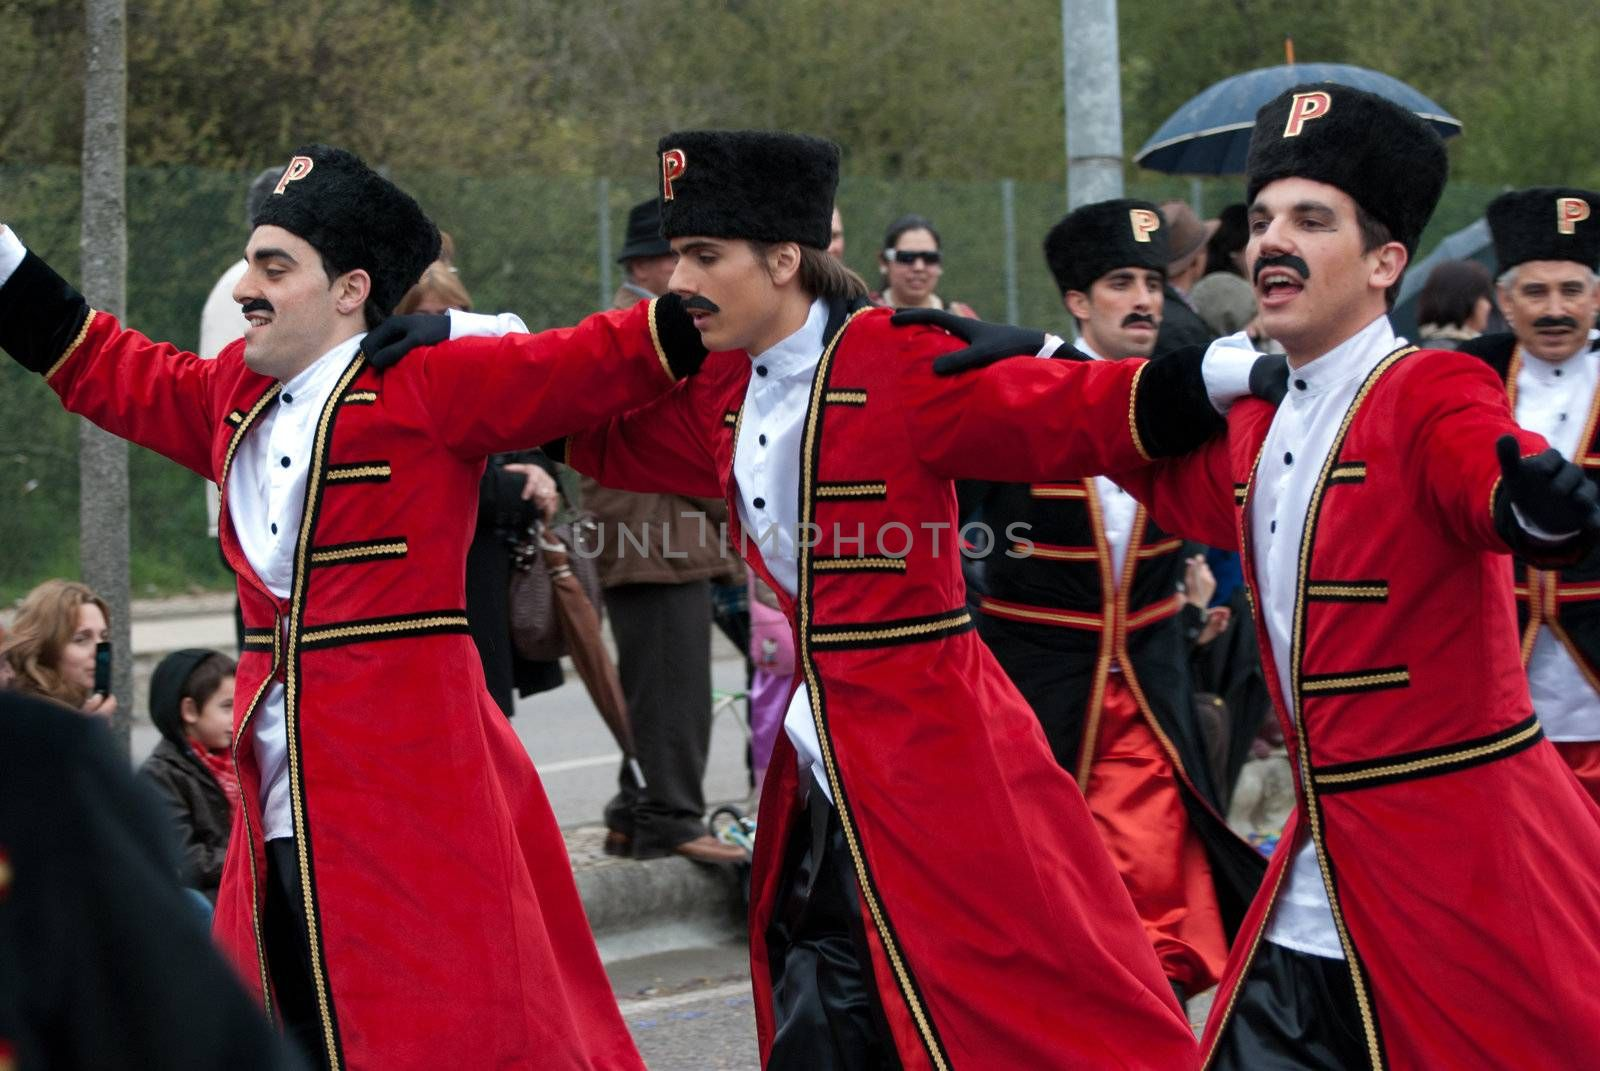 OVAR, PORTUGAL - MARCH 8: Group 'Pinguins'  during the Carnival Parade on March 8, 2011 in Ovar, Portugal.